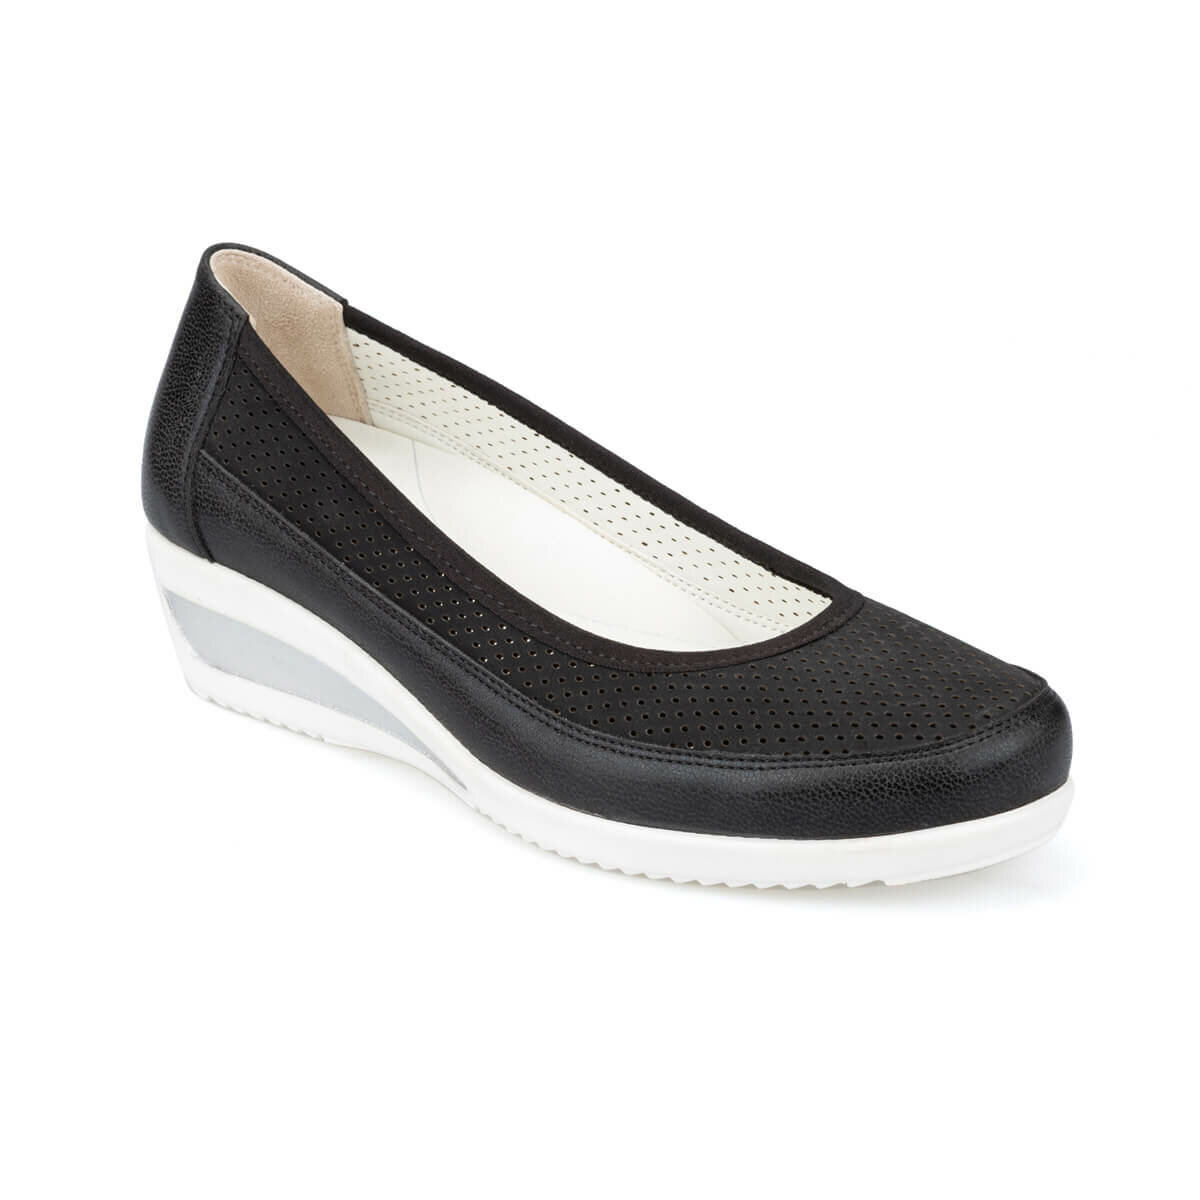 FLO 91.100695.Z Black Women Shoes Polaris 5 Point